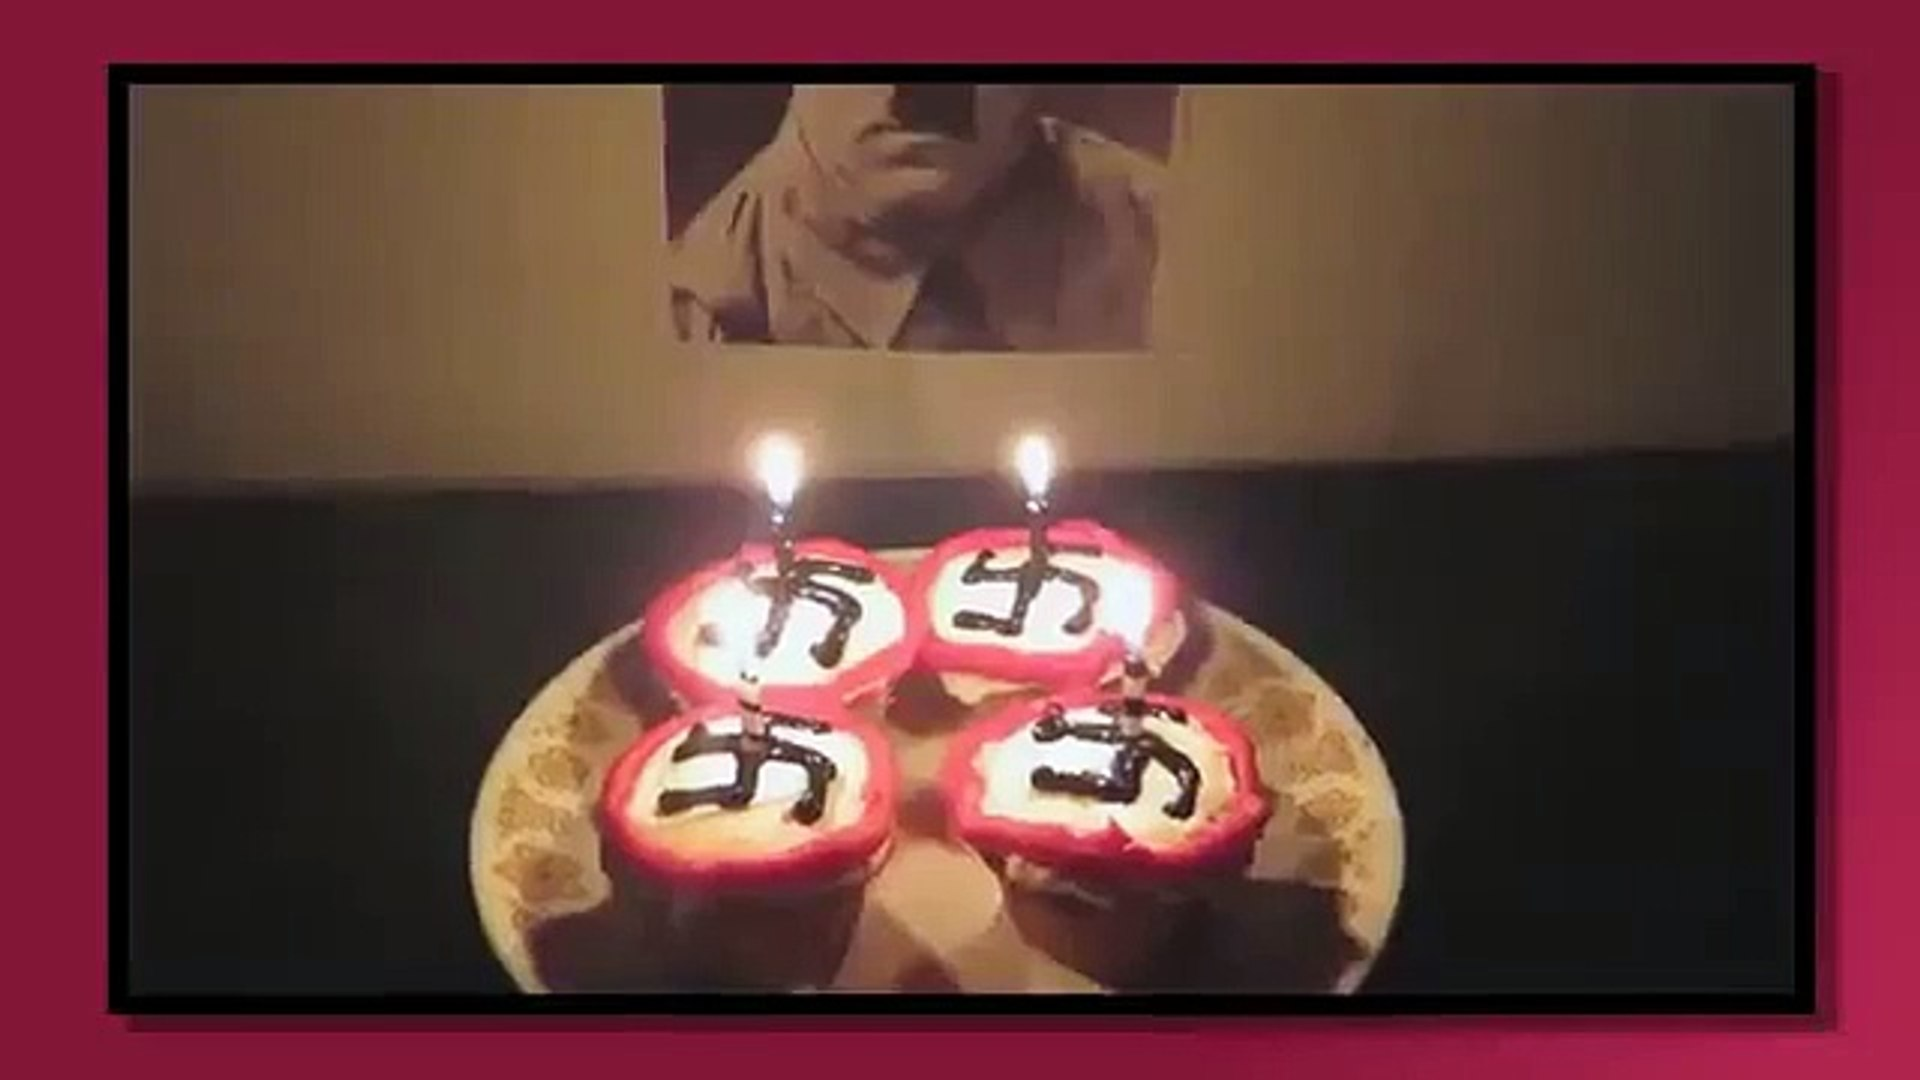 Superb Teen Youtuber Sings Happy Birthday To Hitler In Shock Video Birthday Cards Printable Riciscafe Filternl